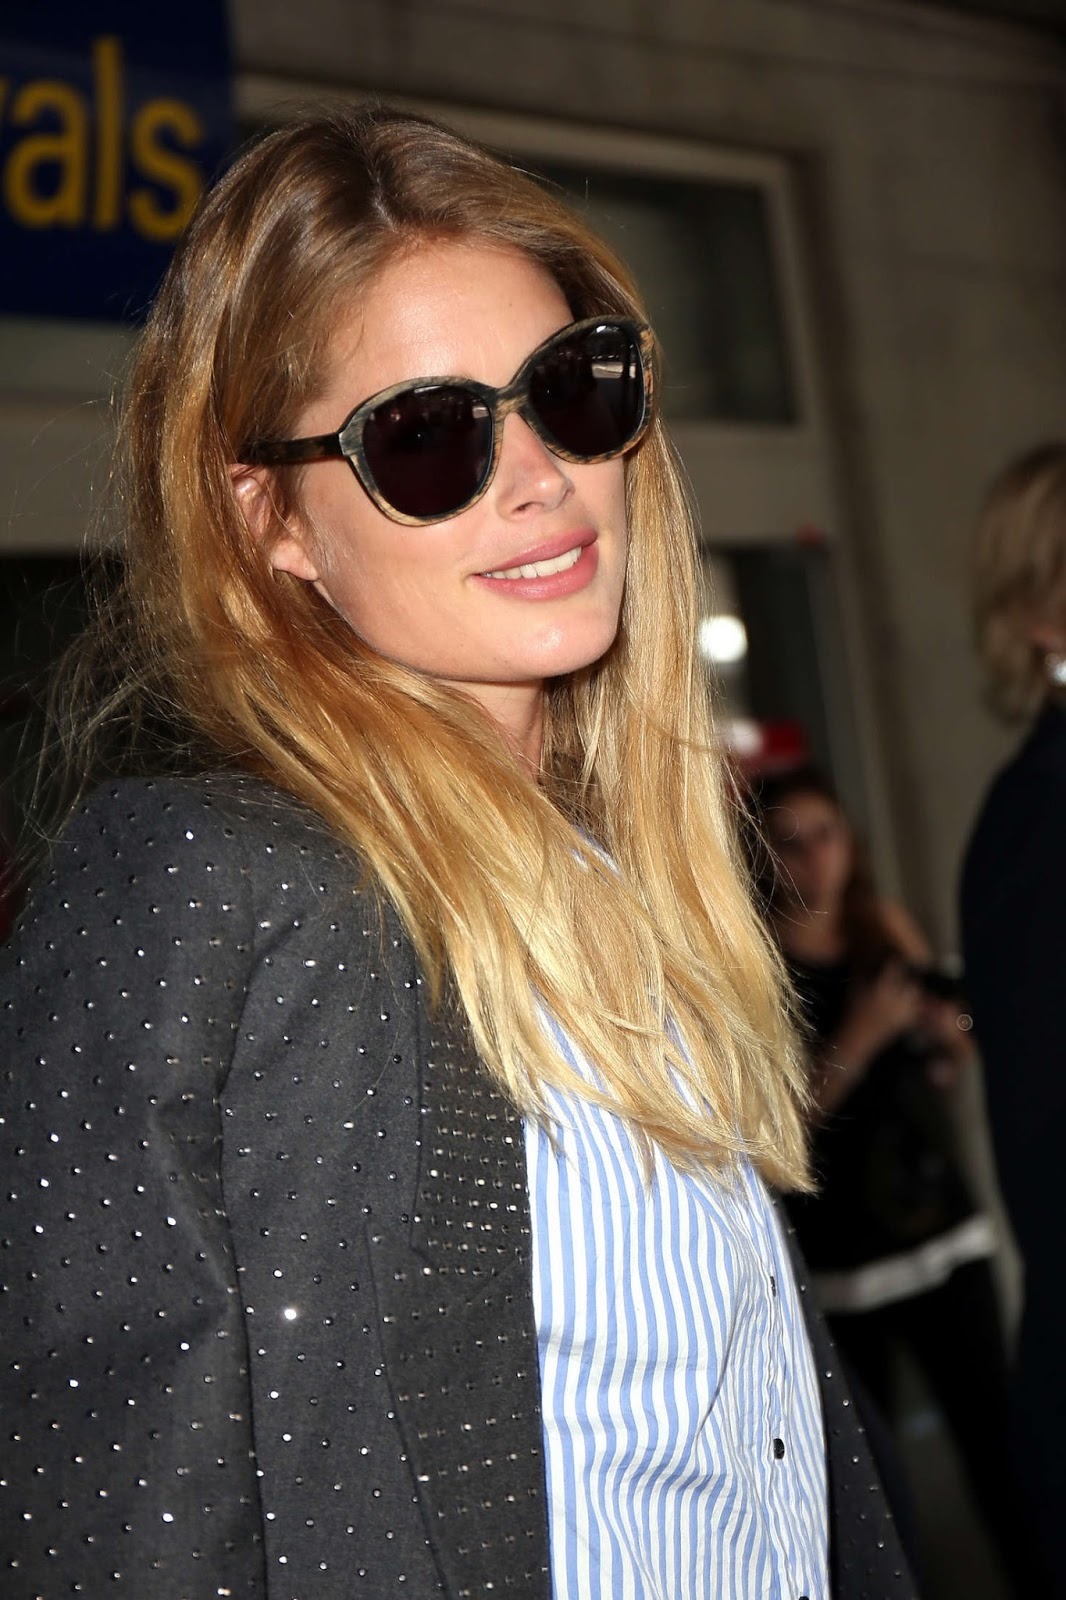 Doutzen Kroes Wears a Striped Shirt at Nice Airport